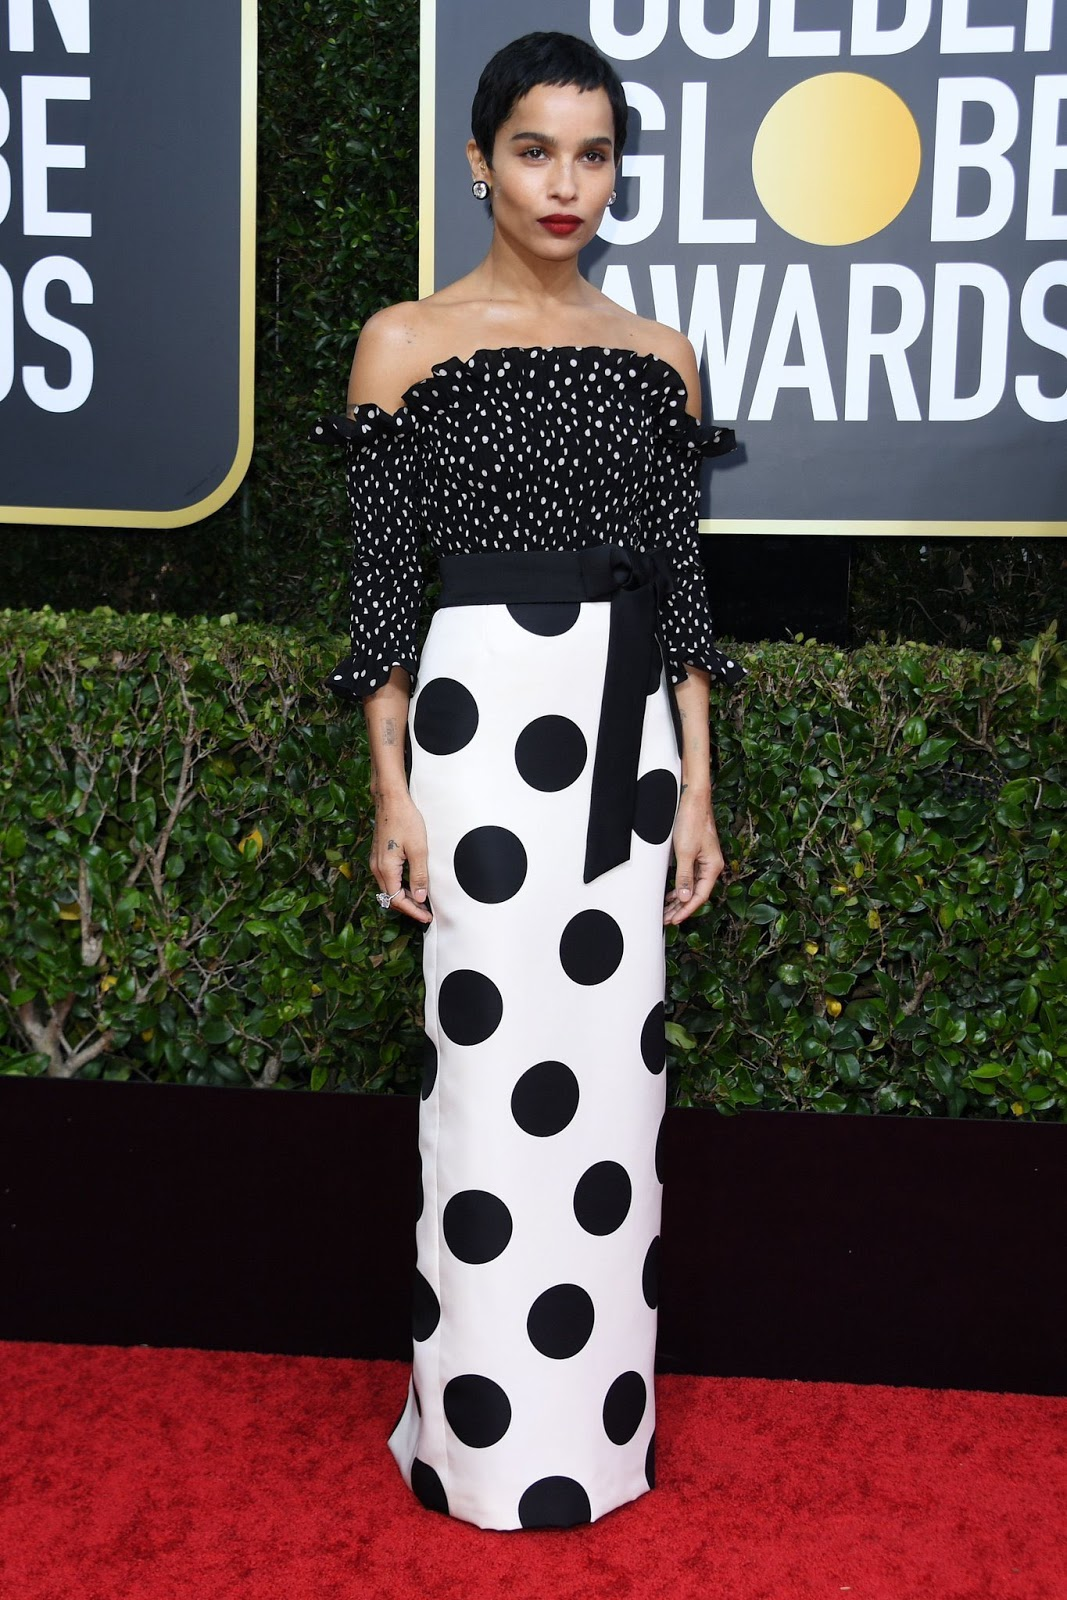 Zoe Kravitz at the 77th Golden Globe Awards' red carpet